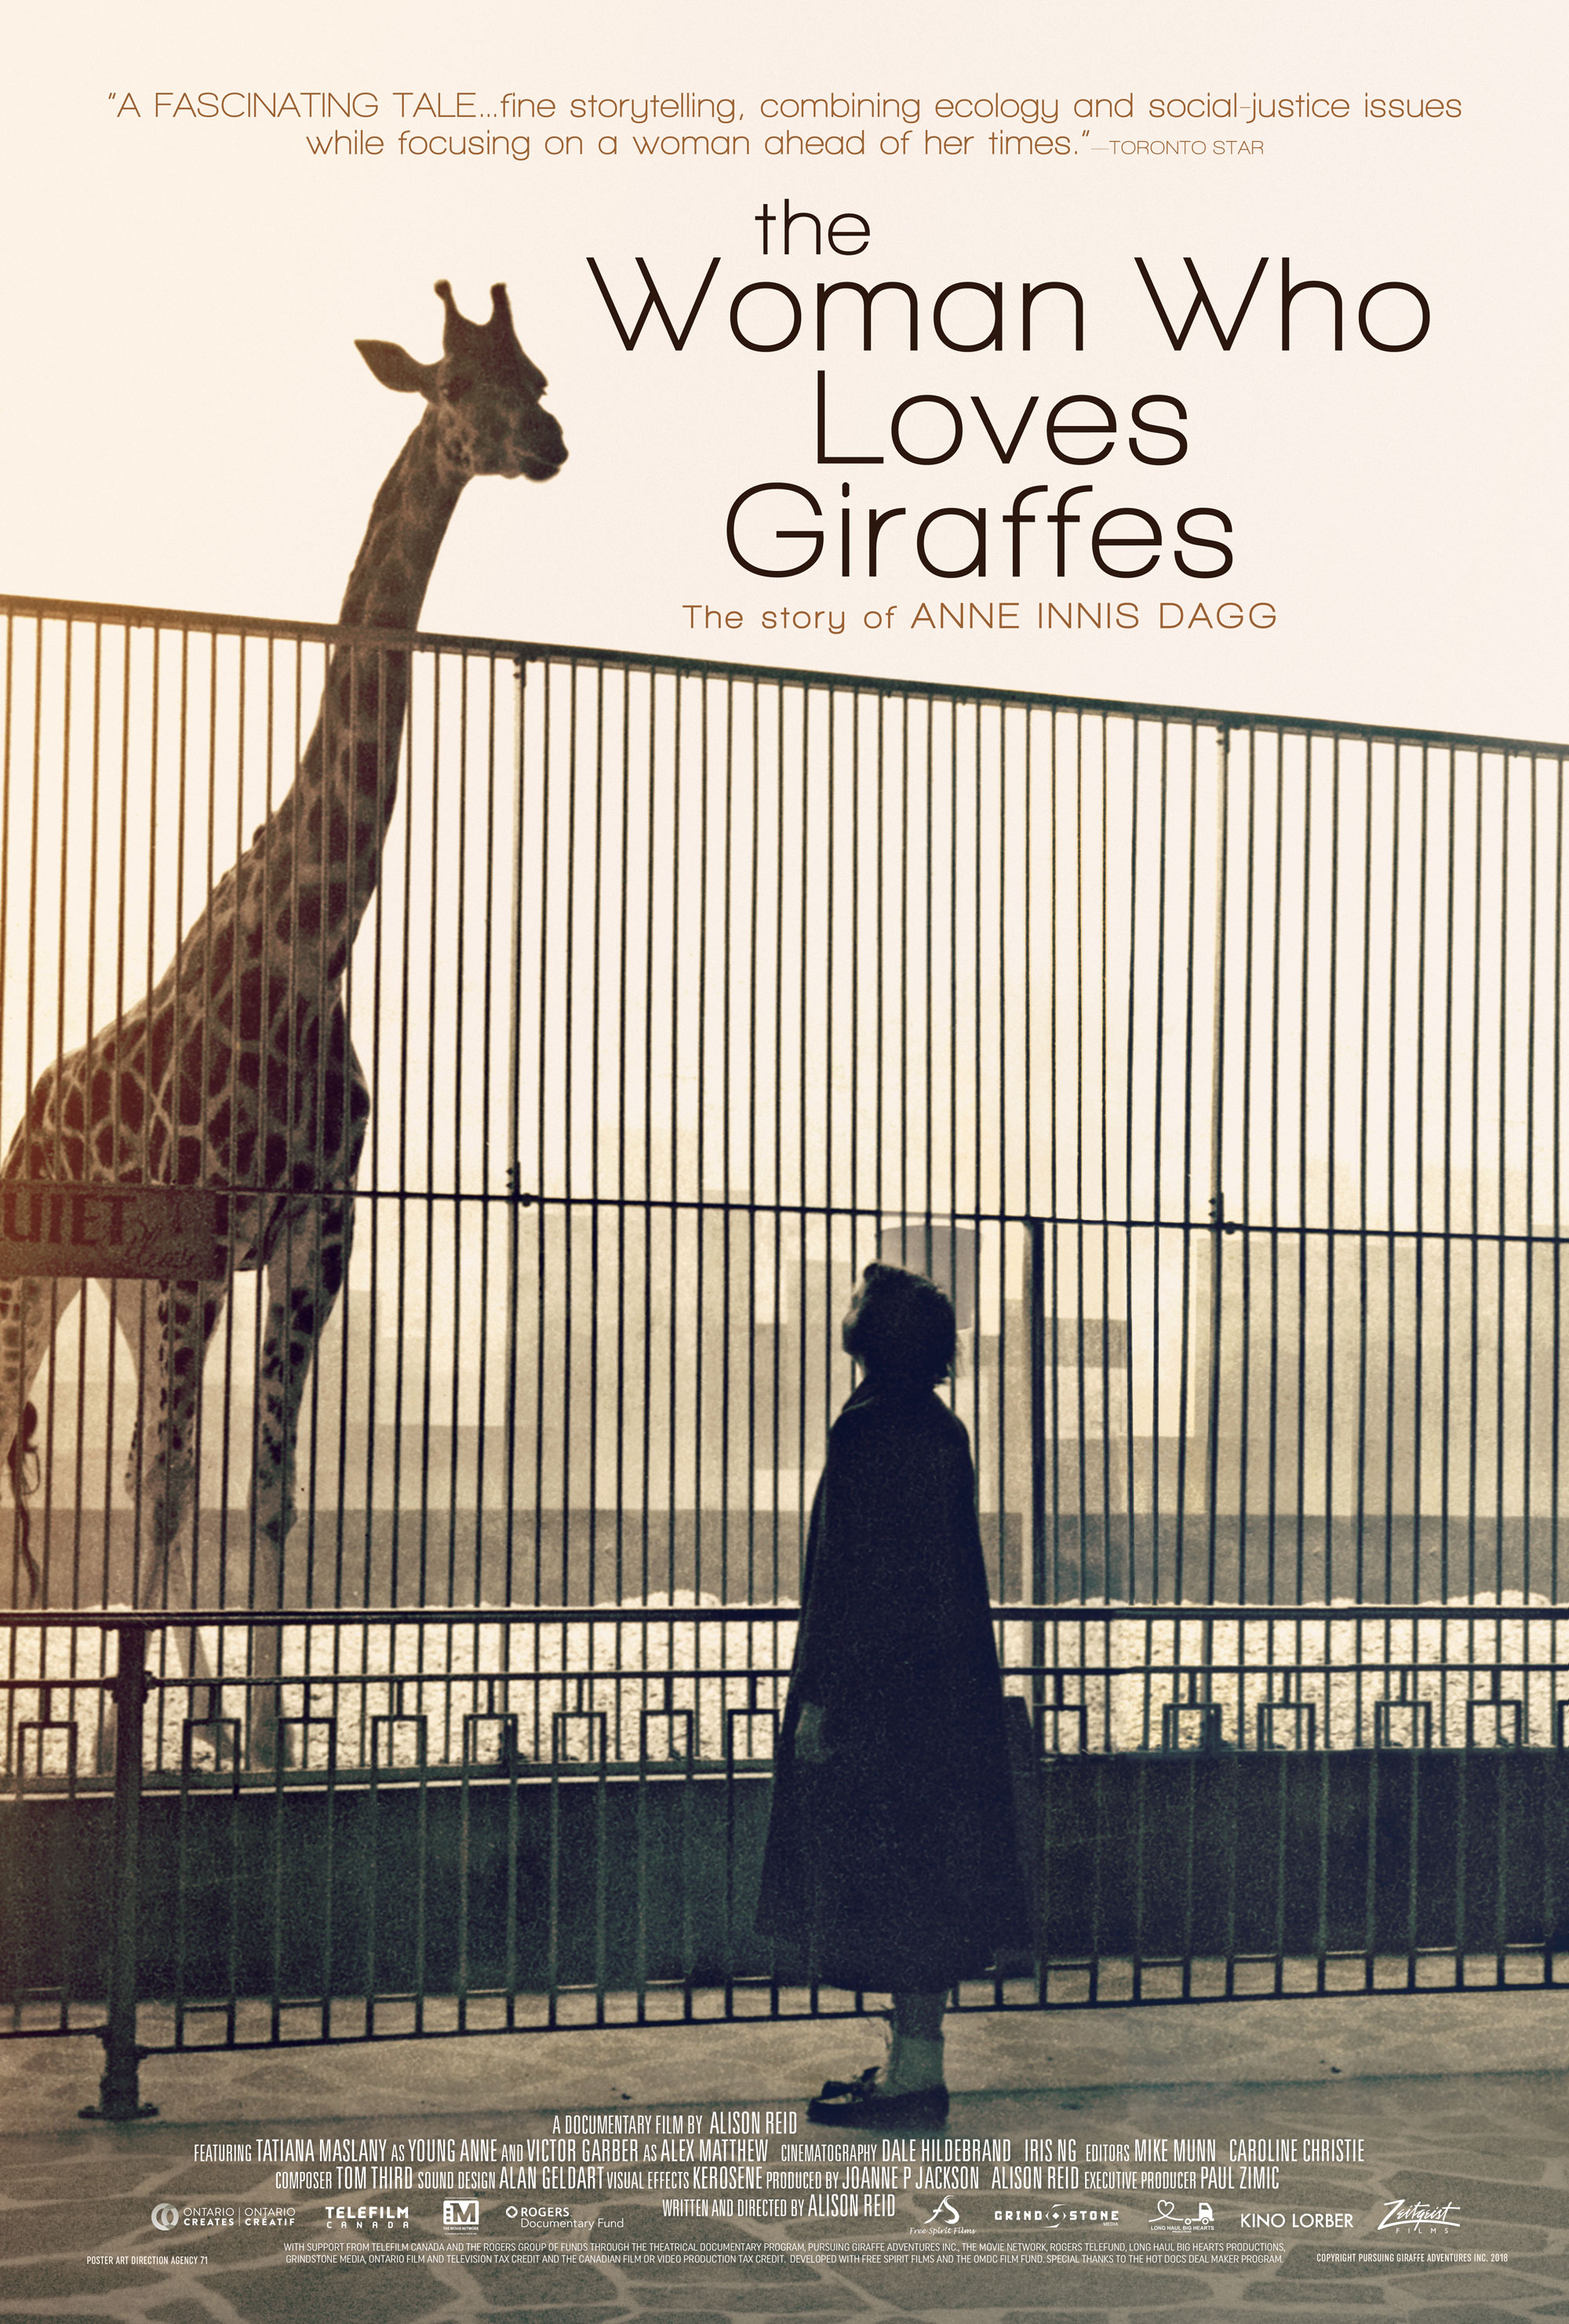 The Woman Who Loves Giraffes [Blu-ray]